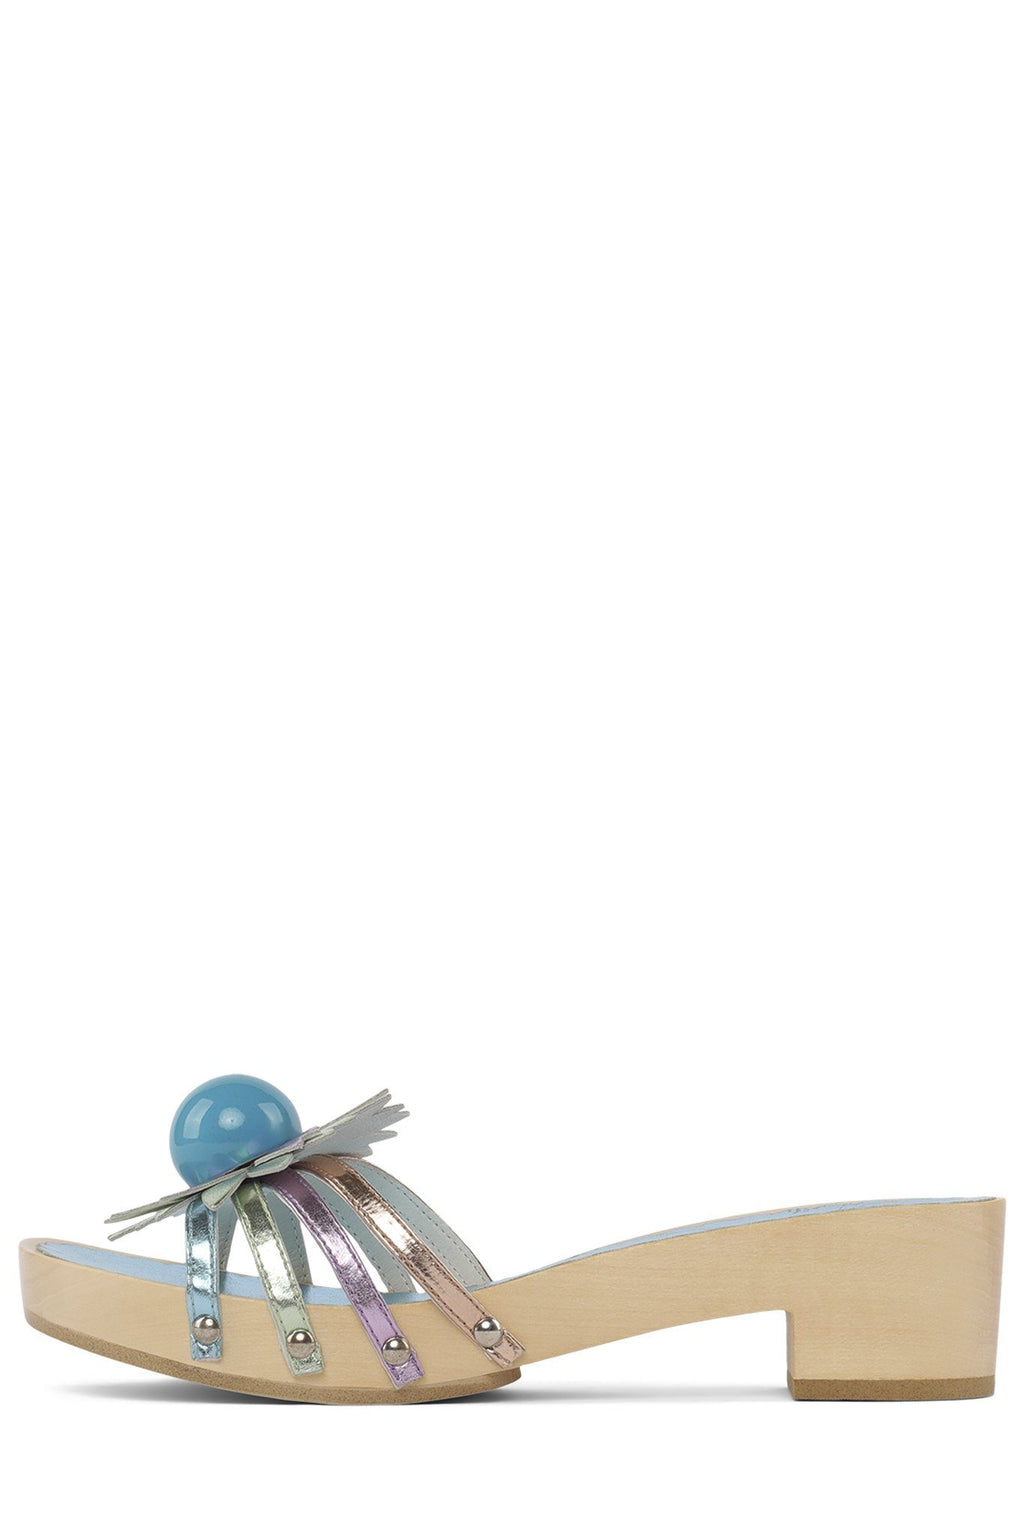 BLOSSOMS Heeled Sandal STRATEGY Pastel Metallic Multi 6